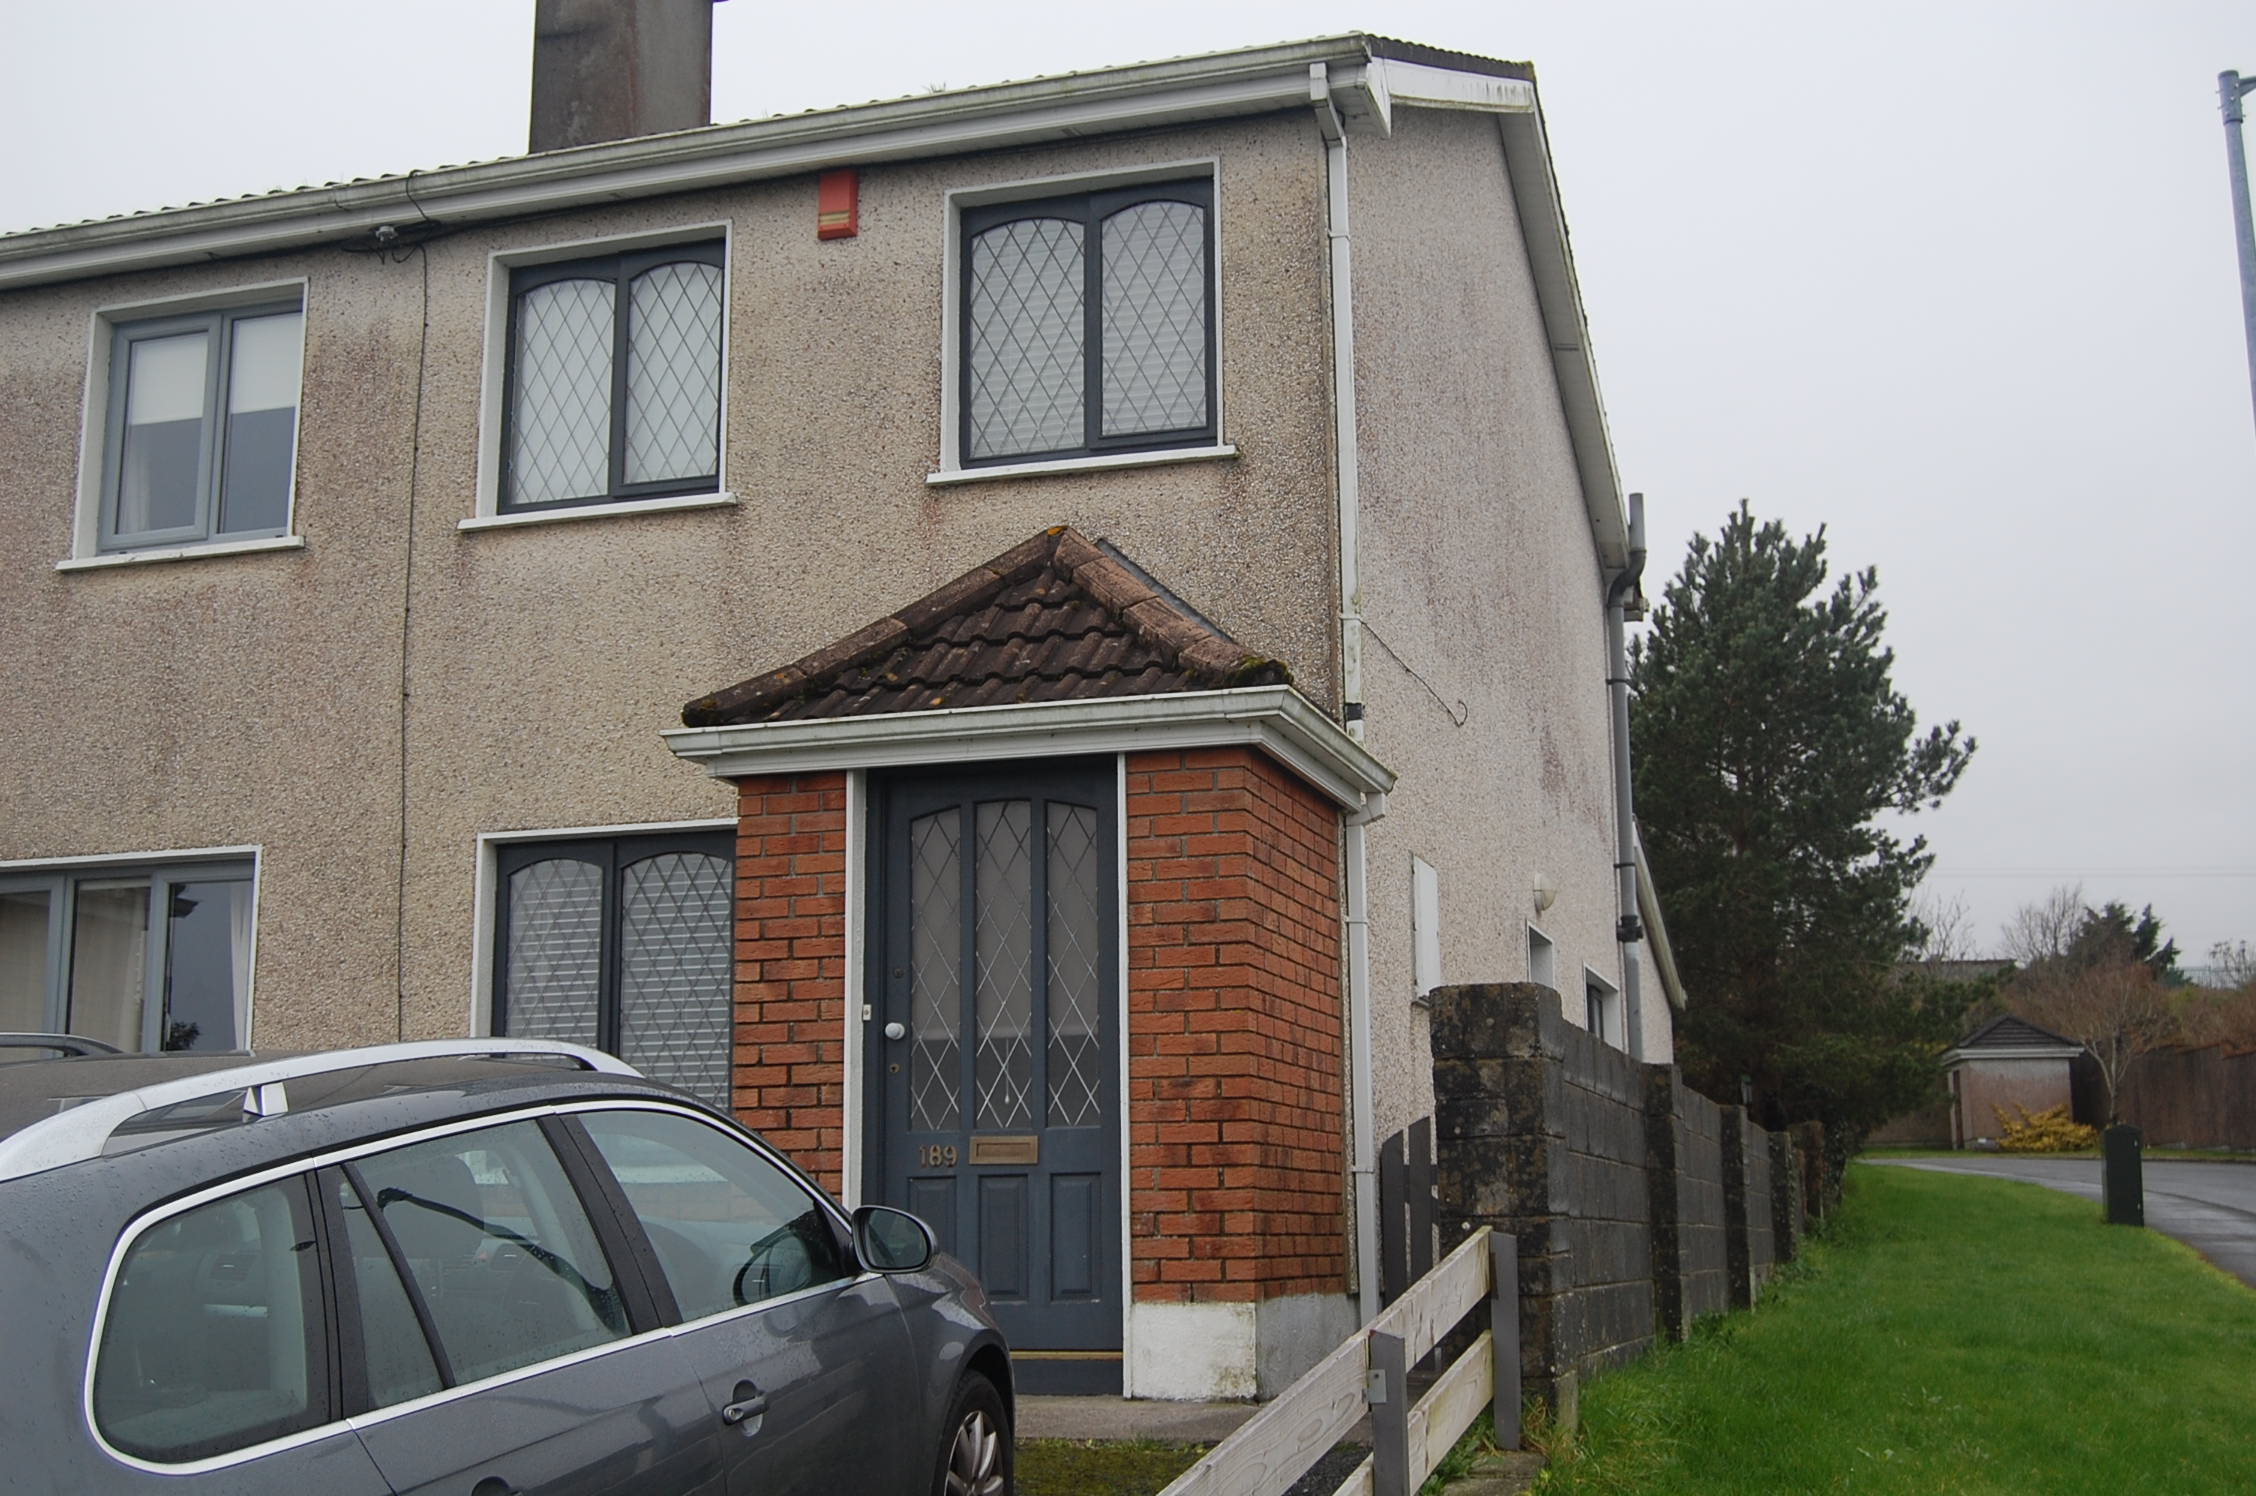 189 Laurel Park, Newcastle, Newcastle, Galway City Suburbs – Eircode: H91 XCH7